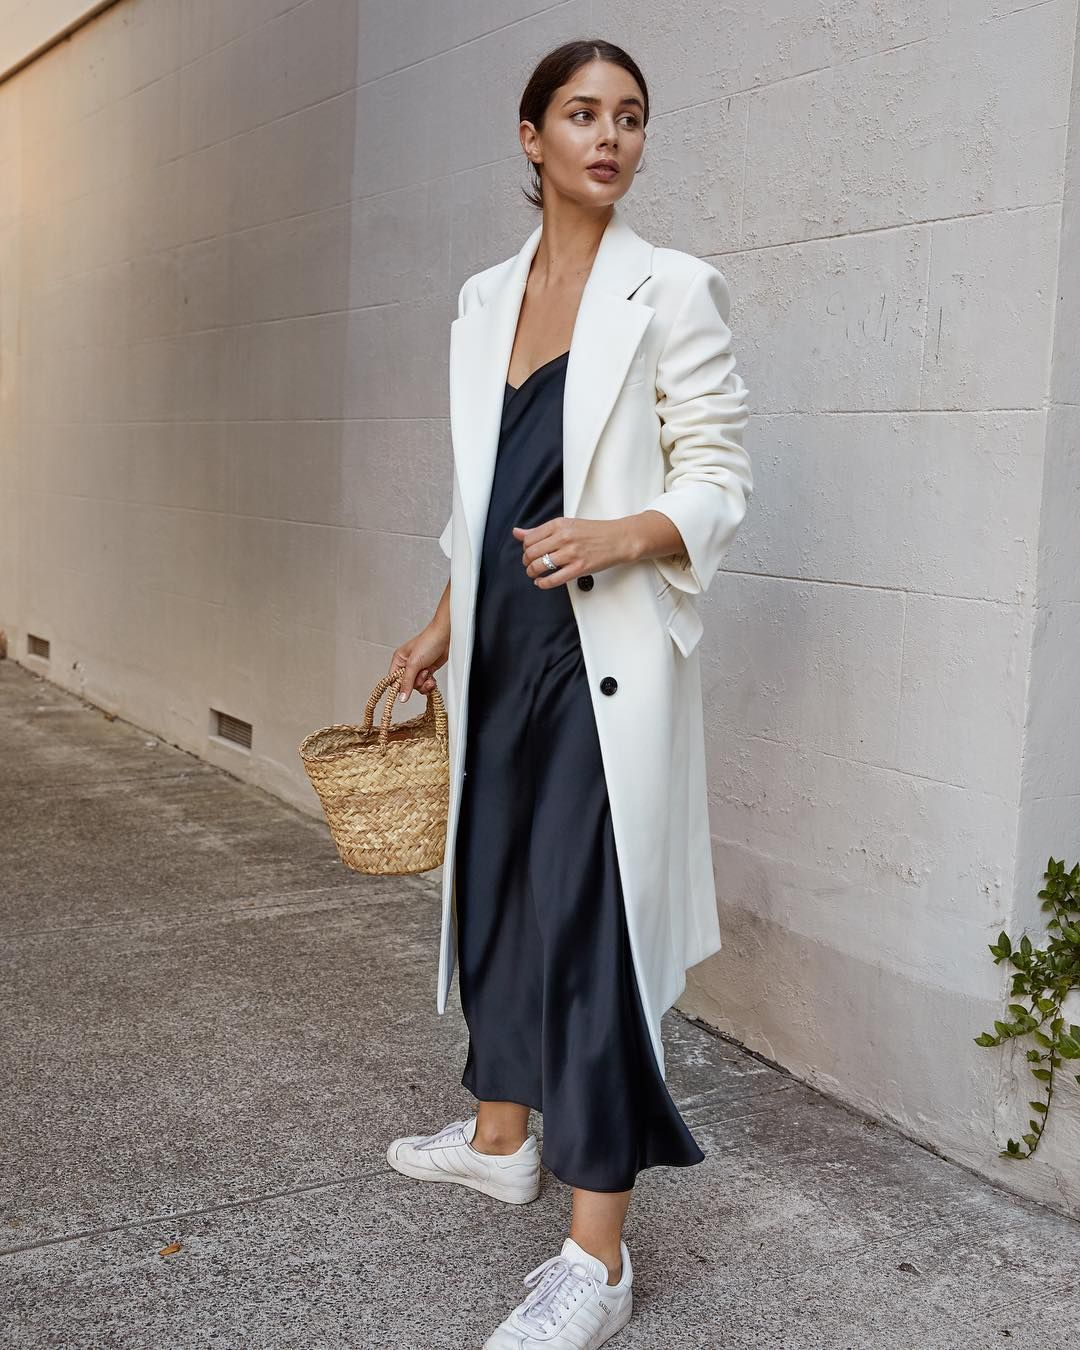 Đầm lụa slip dress phối cùng blazer dáng dài